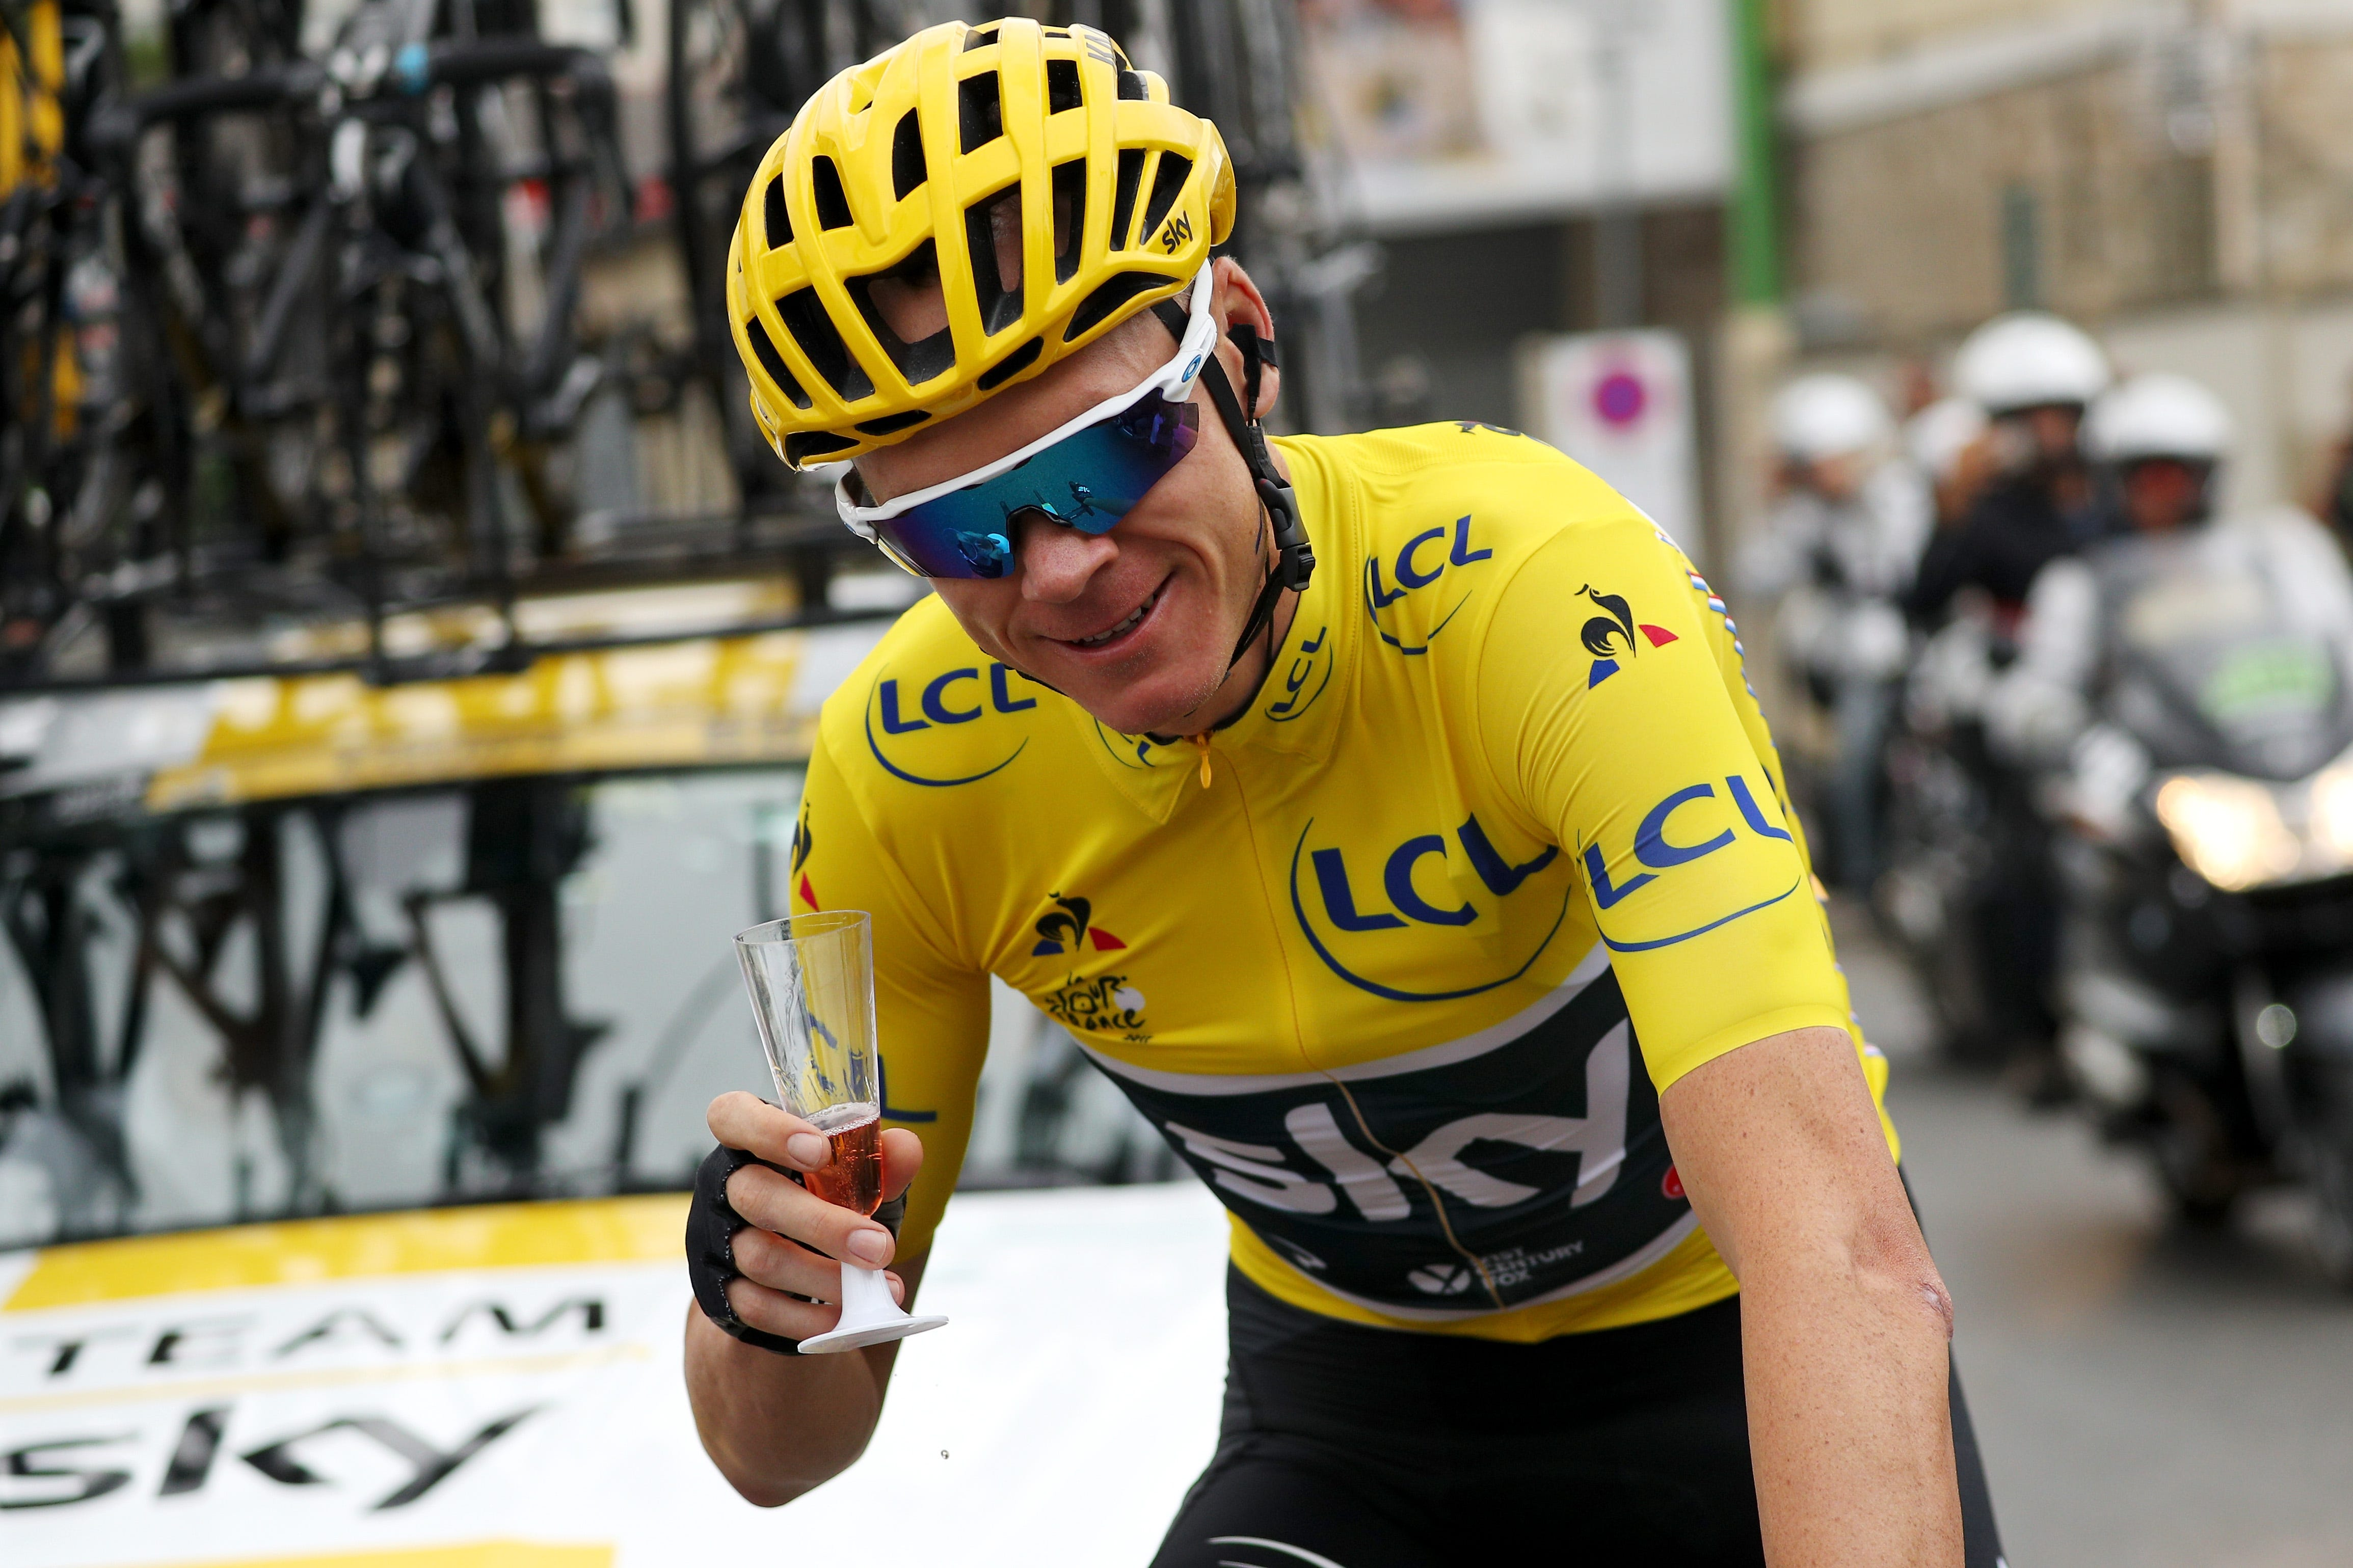 Chris Froome Helps A Journalist Suggest After Win